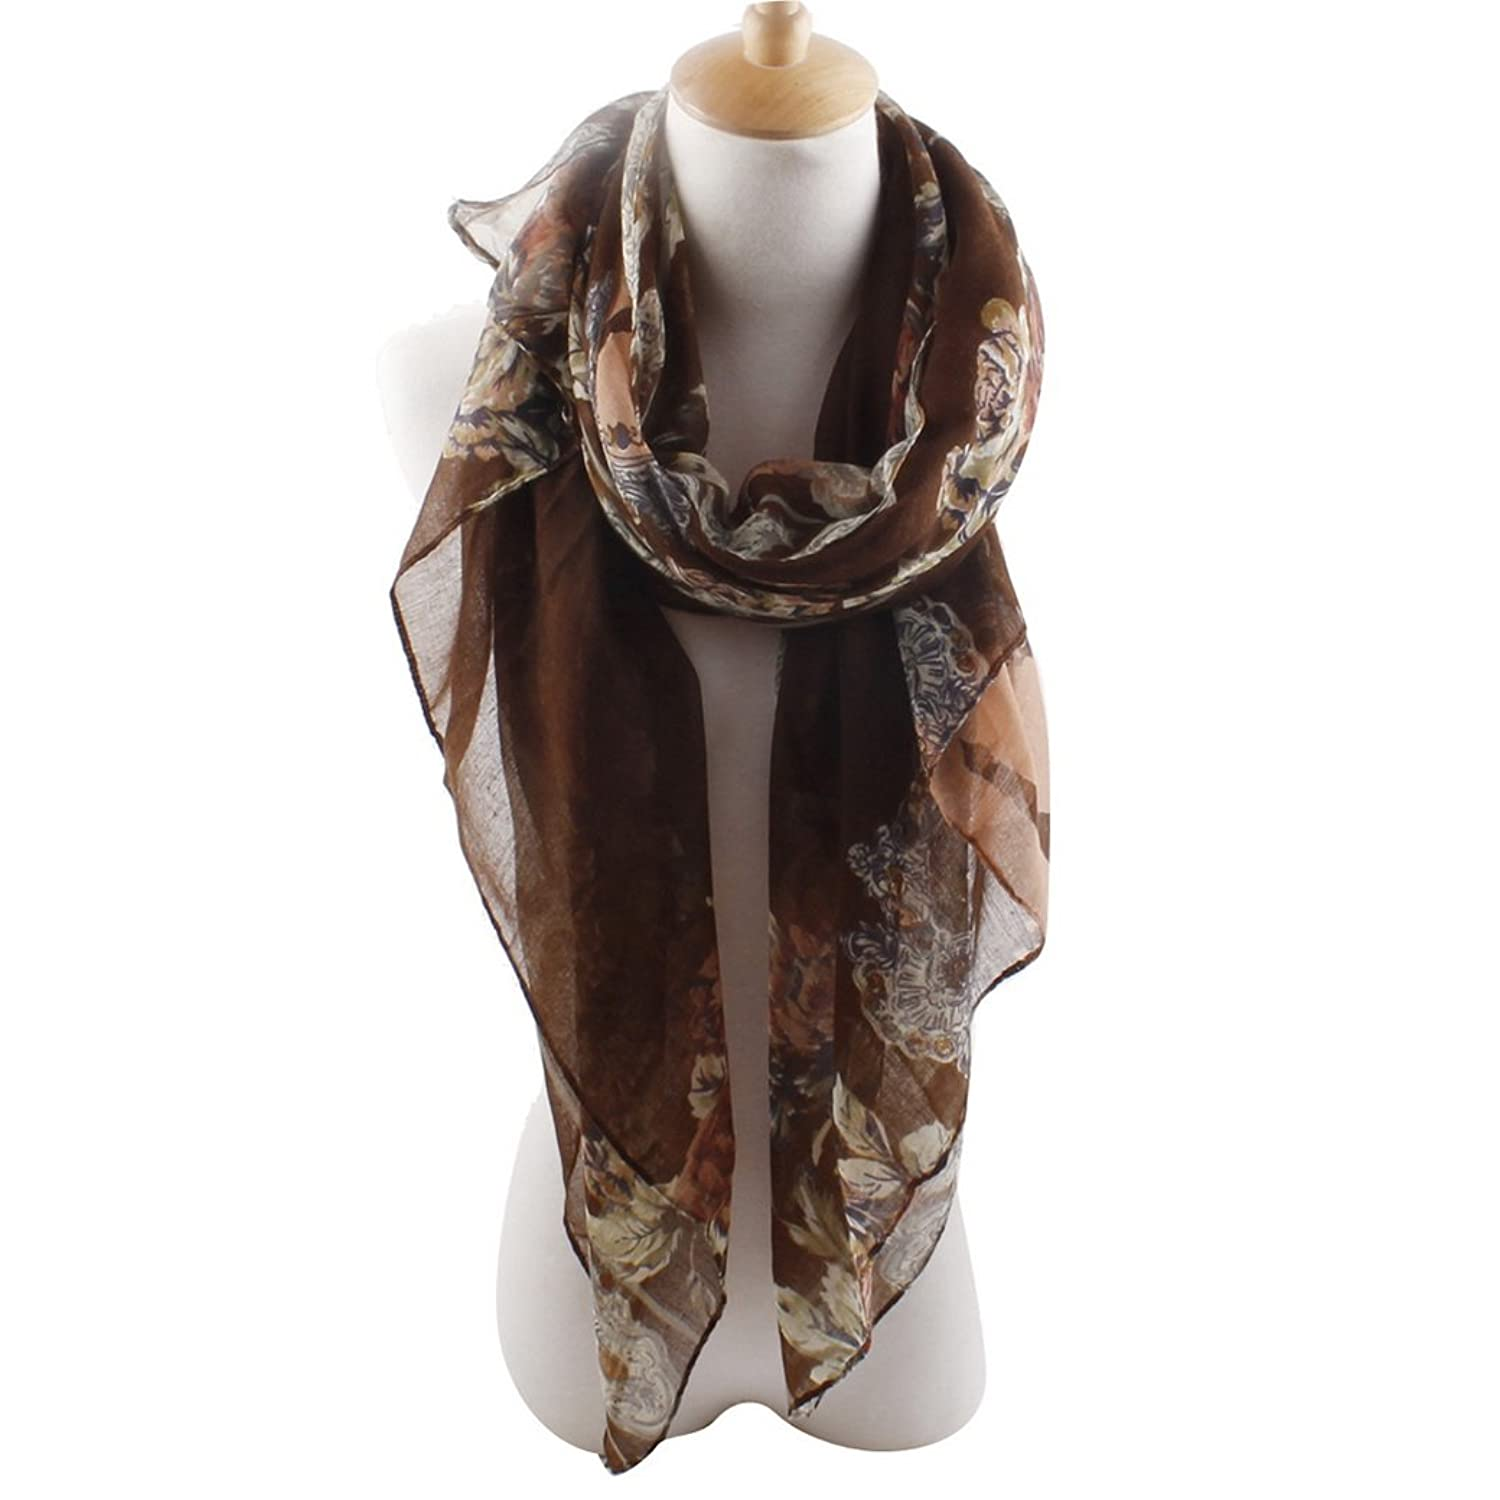 Tangda Women Girls Long Soft Silk Chiffon Flowers Scarf Wrap Shawl